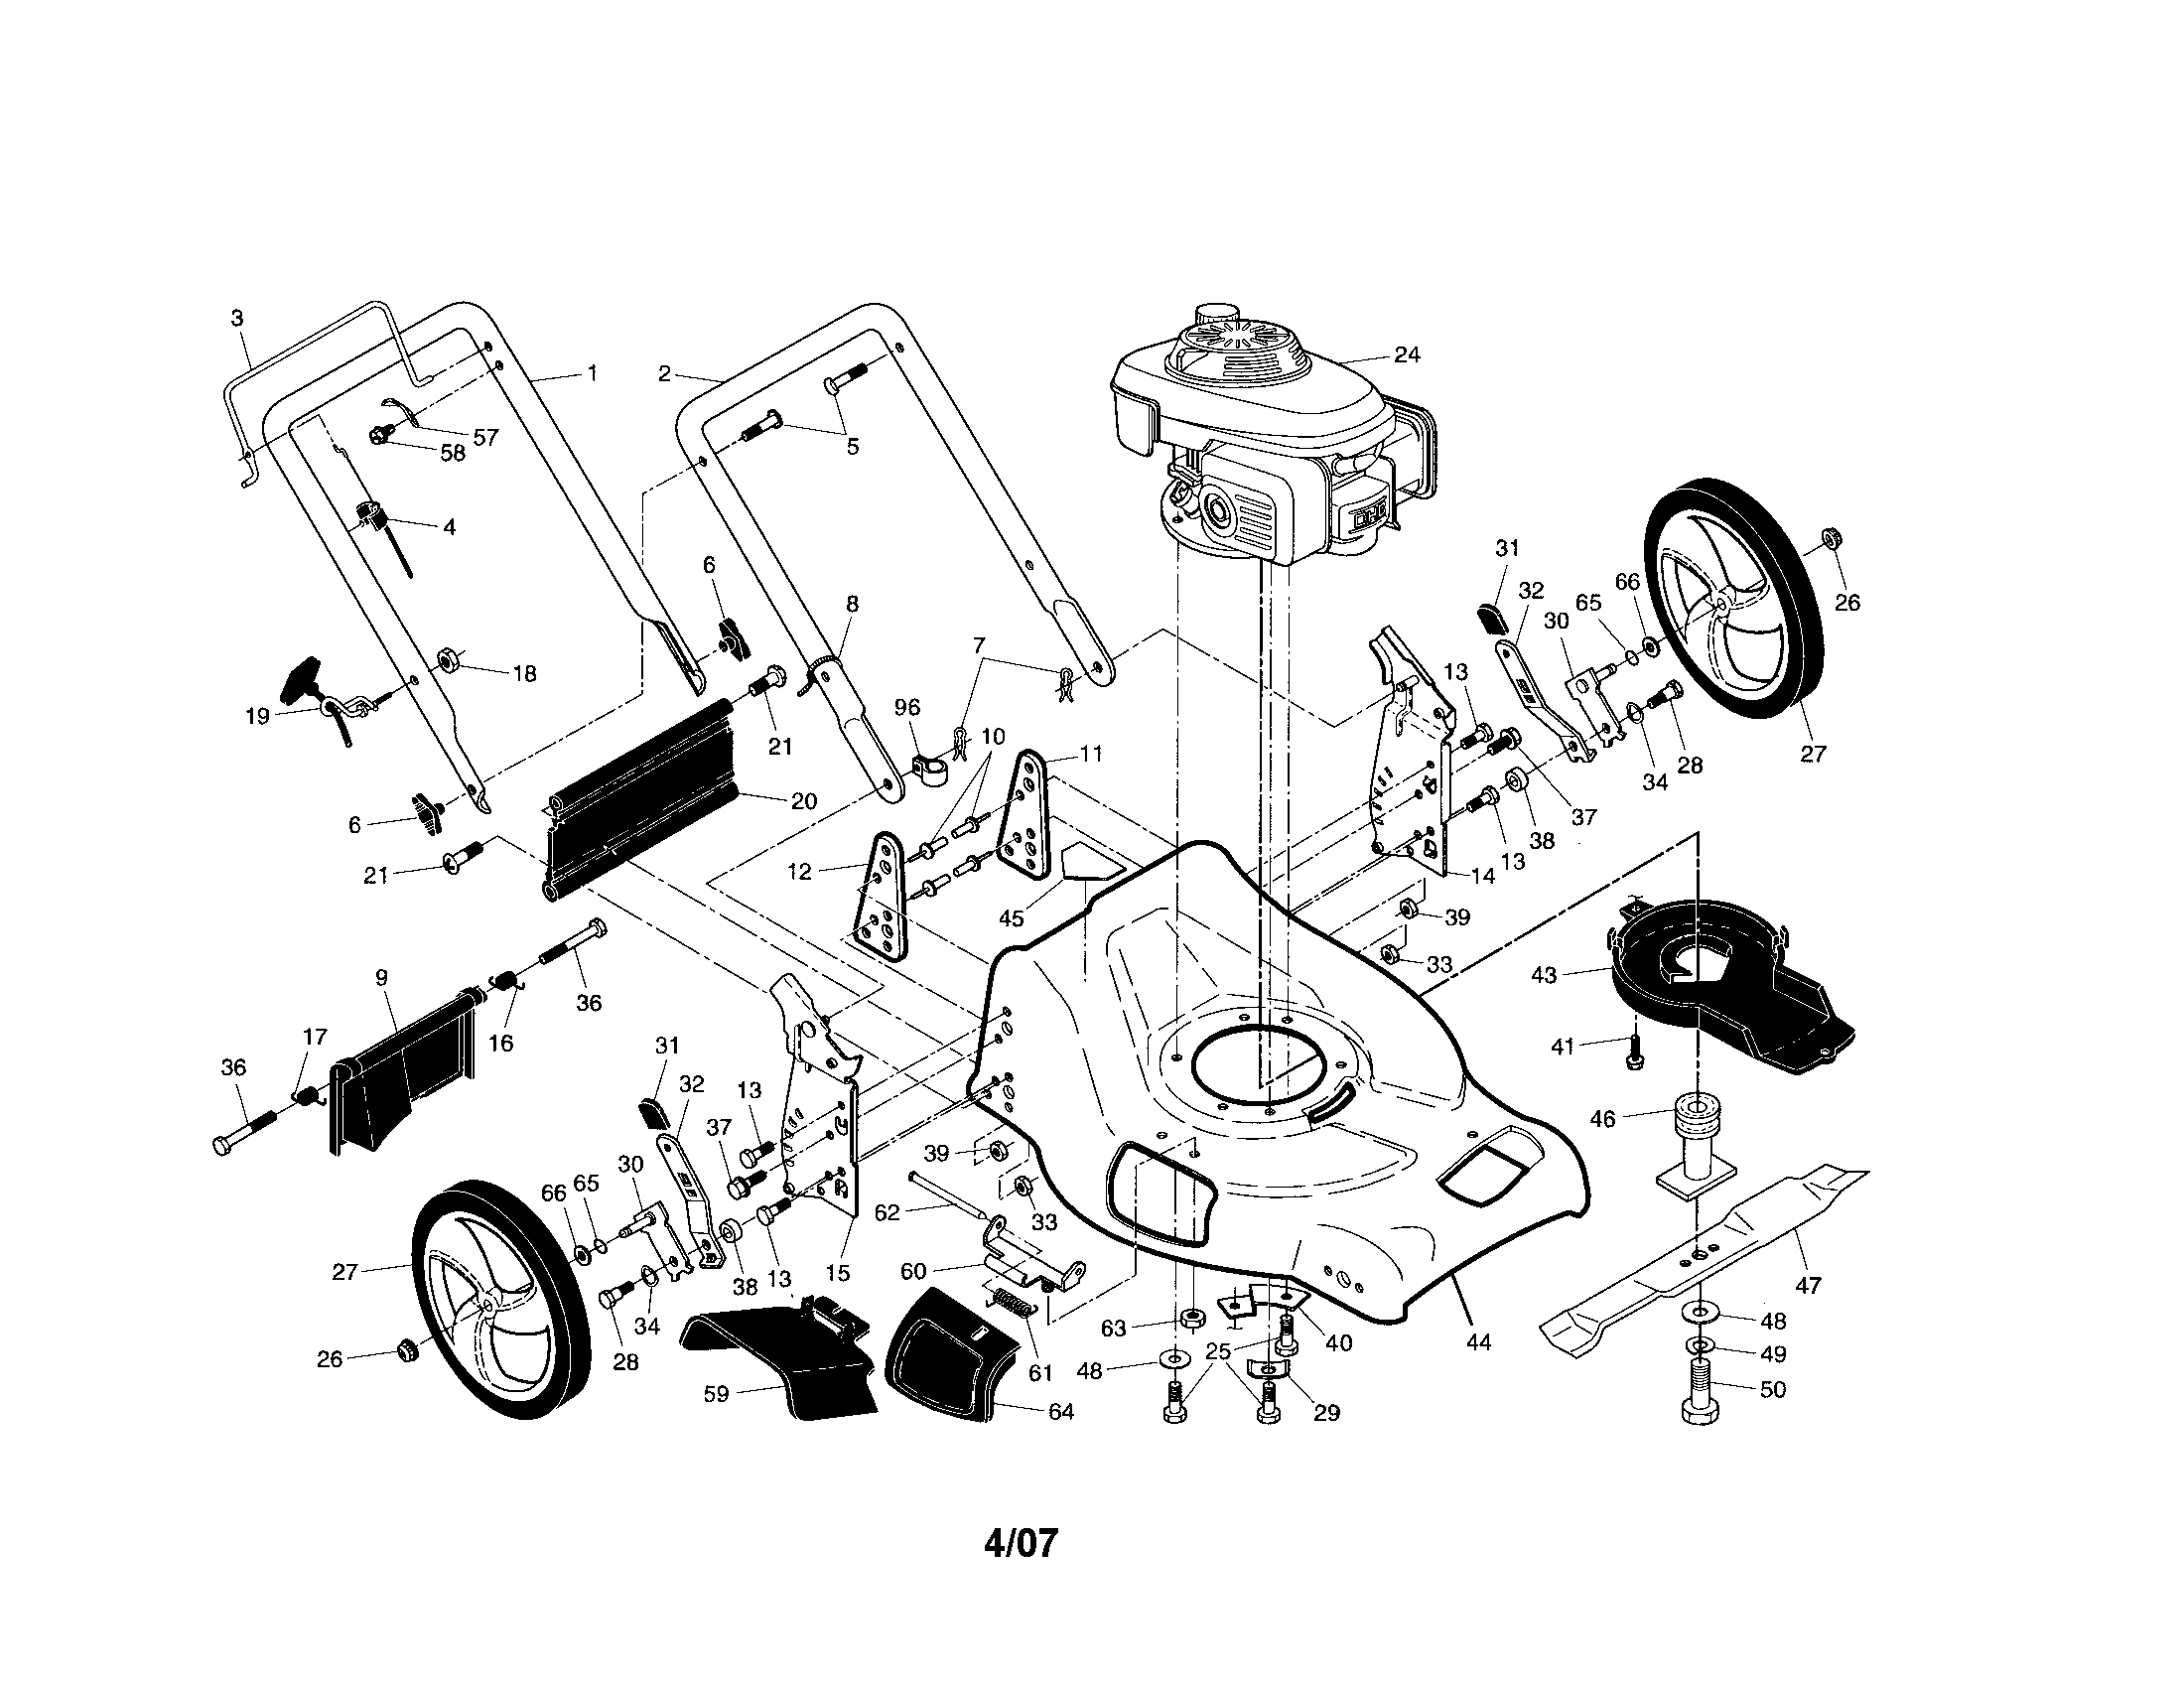 P0704025-00001 Yamaha Outboard Wiring Diagram on tilt trim gauge, f25tlry, for 6hp, parts meters speed, for tachometer,